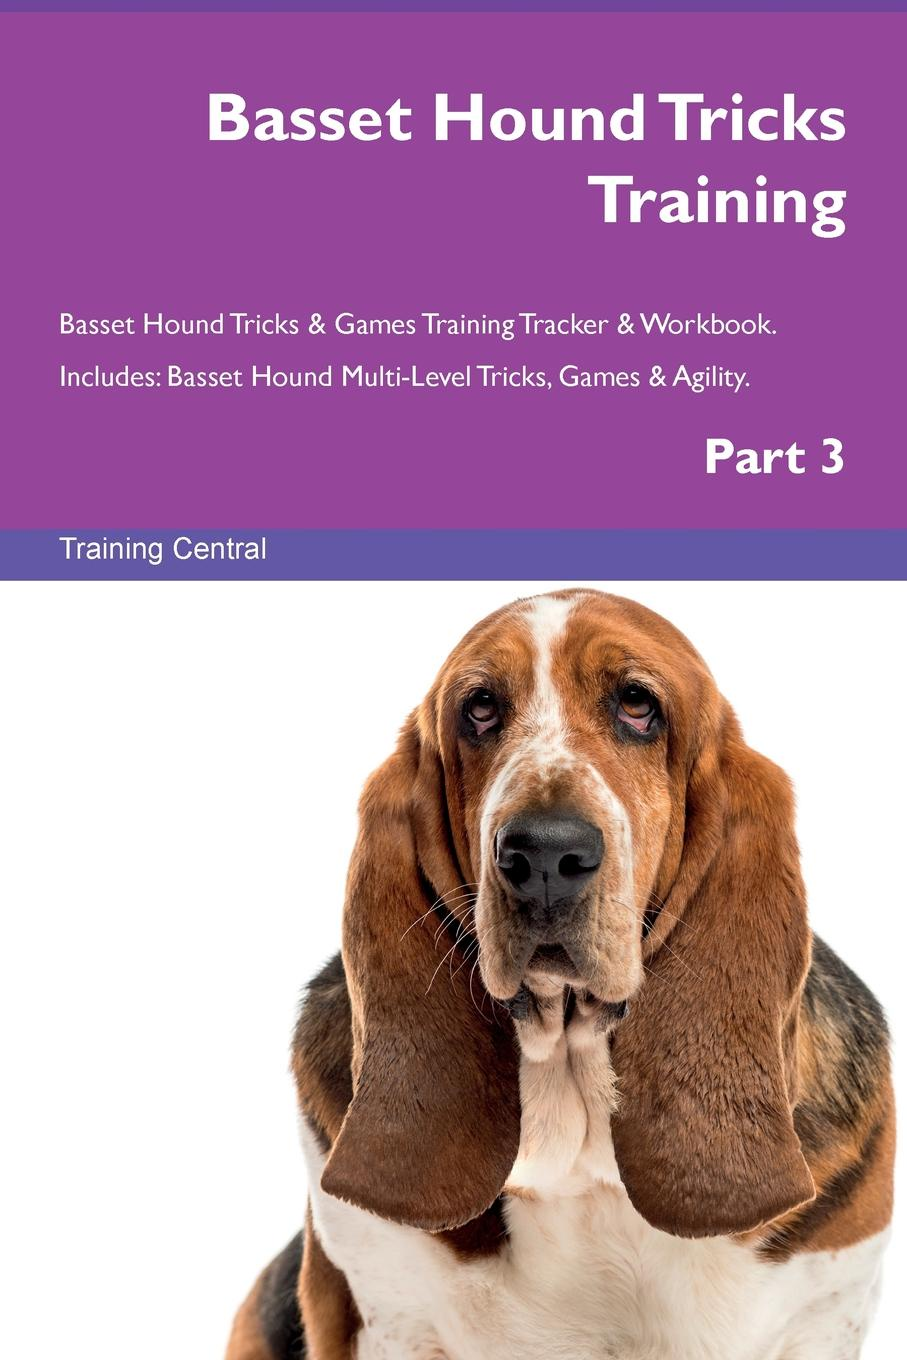 Training Central Basset Hound Tricks Training Basset Hound Tricks & Games Training Tracker & Workbook. Includes. Basset Hound Multi-Level Tricks, Games & Agility. Part 3 training central russian piebald hound tricks training russian piebald hound tricks games training tracker workbook includes russian piebald hound multi level tricks games agility part 3